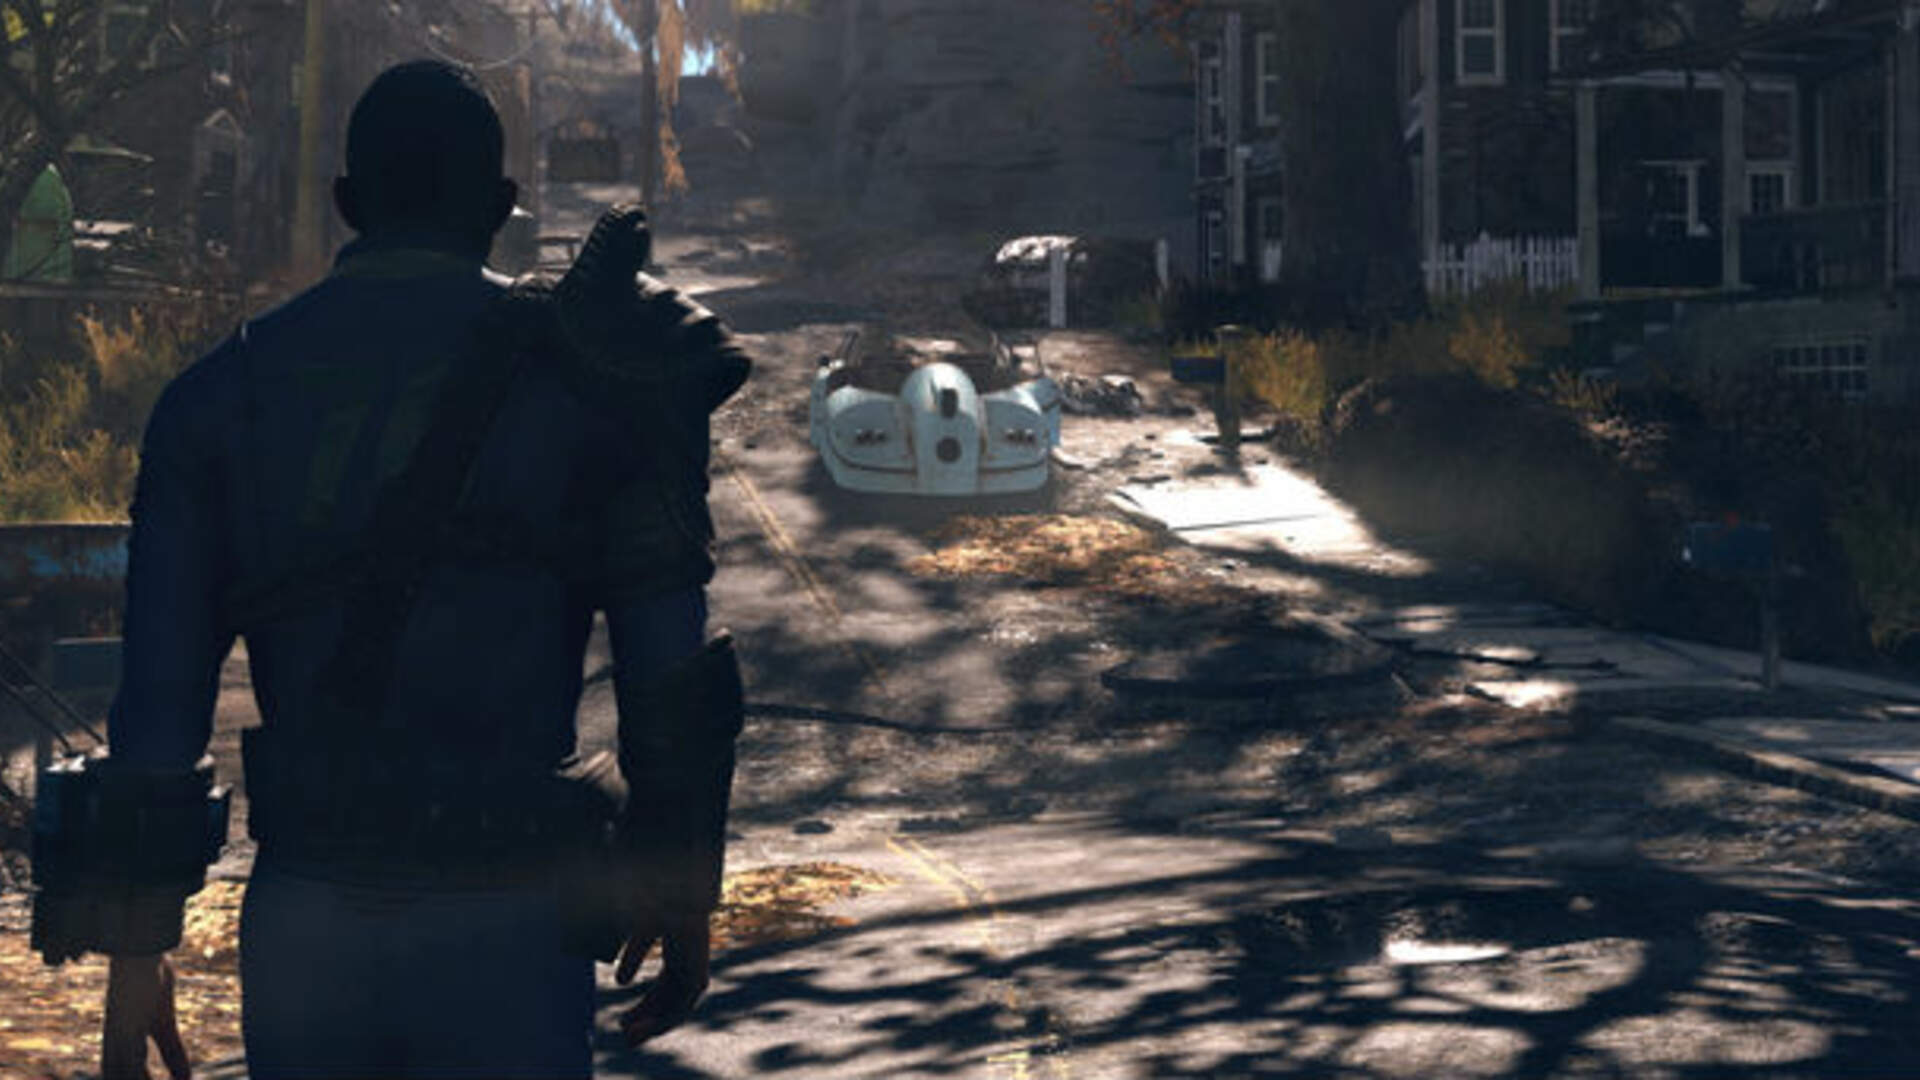 Fallout 76 Played Solo Is a Lonely, Not Lifeless Experience